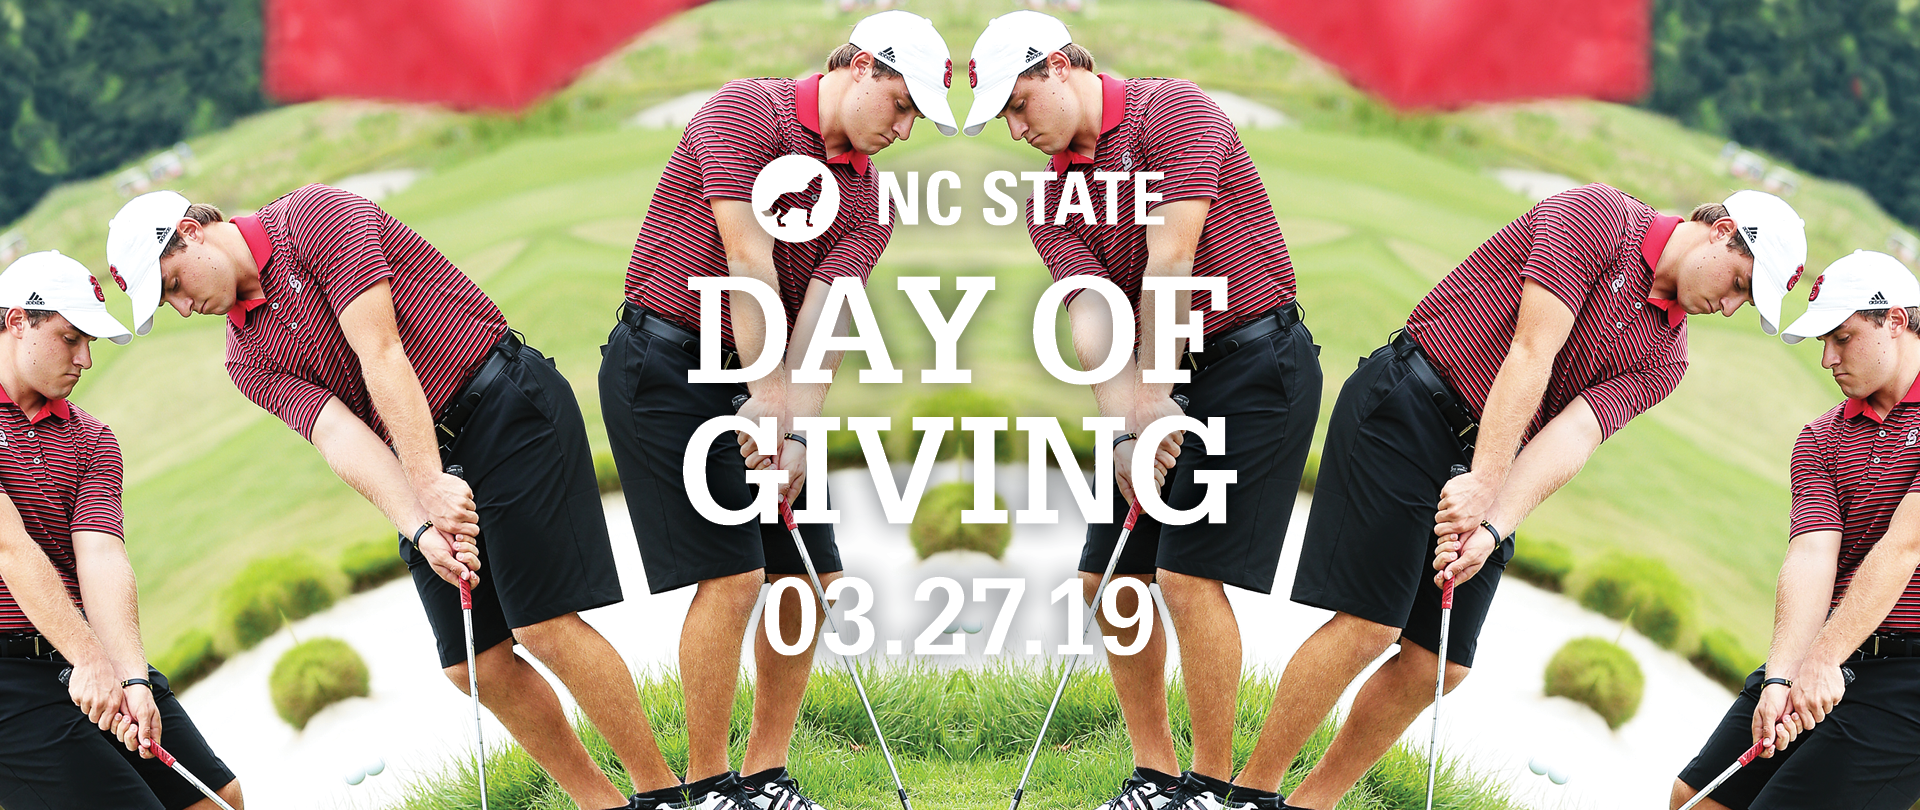 NC State Day of Giving: March 27, 2019.